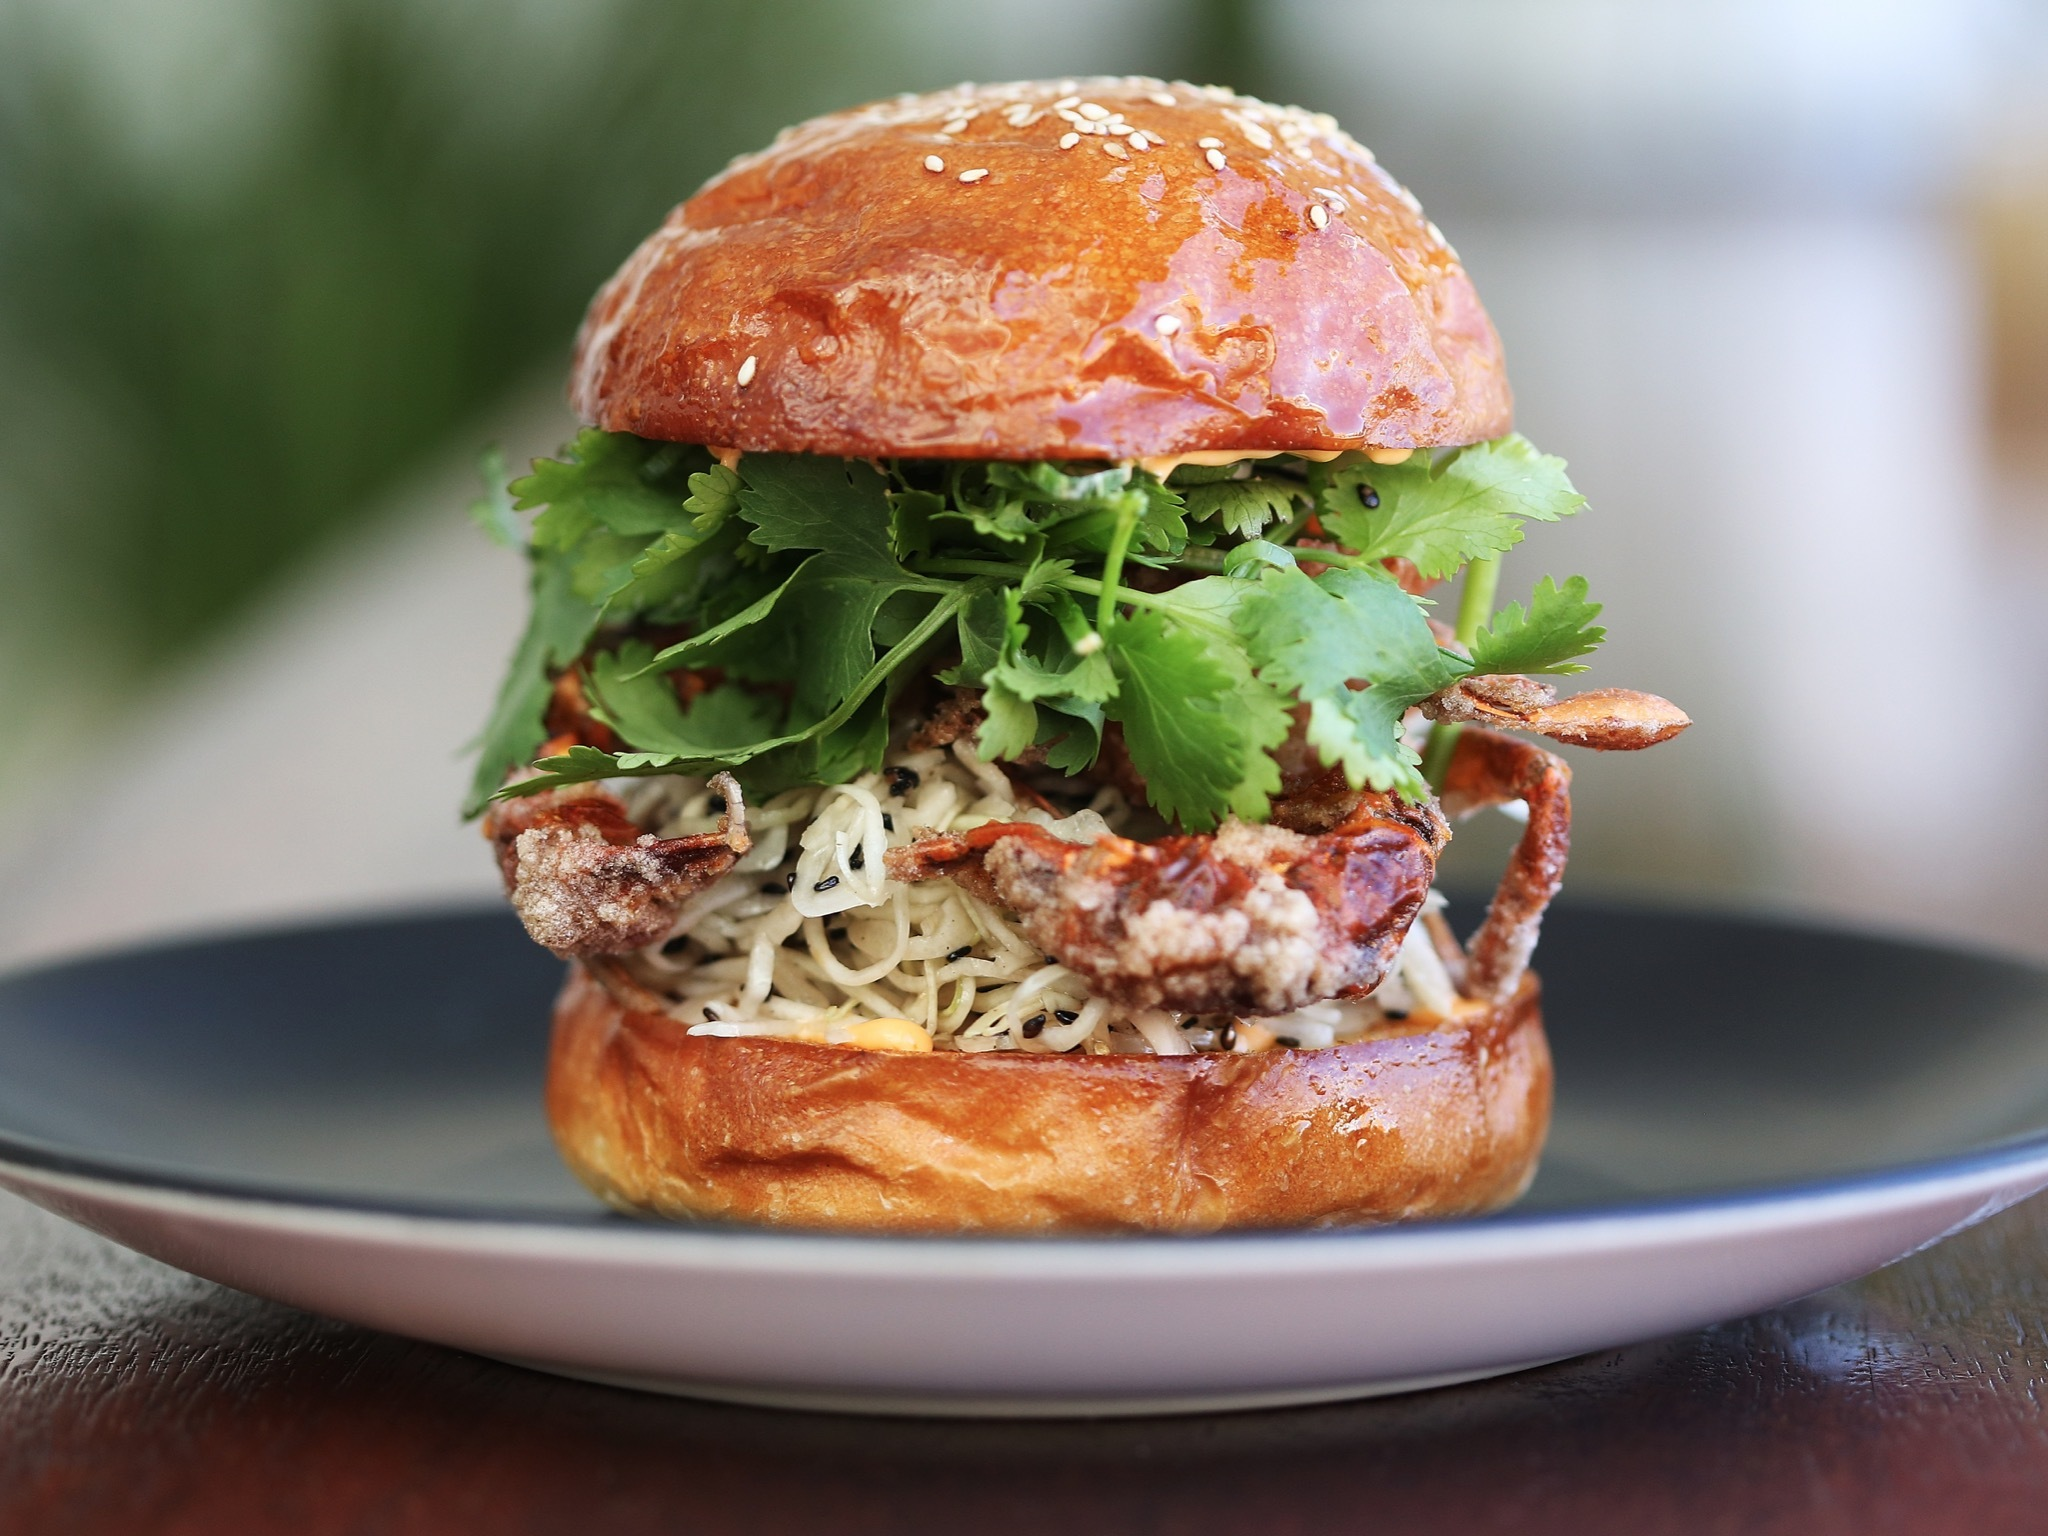 A soft shell crab burger with sriracha mayonnaise and coleslaw a